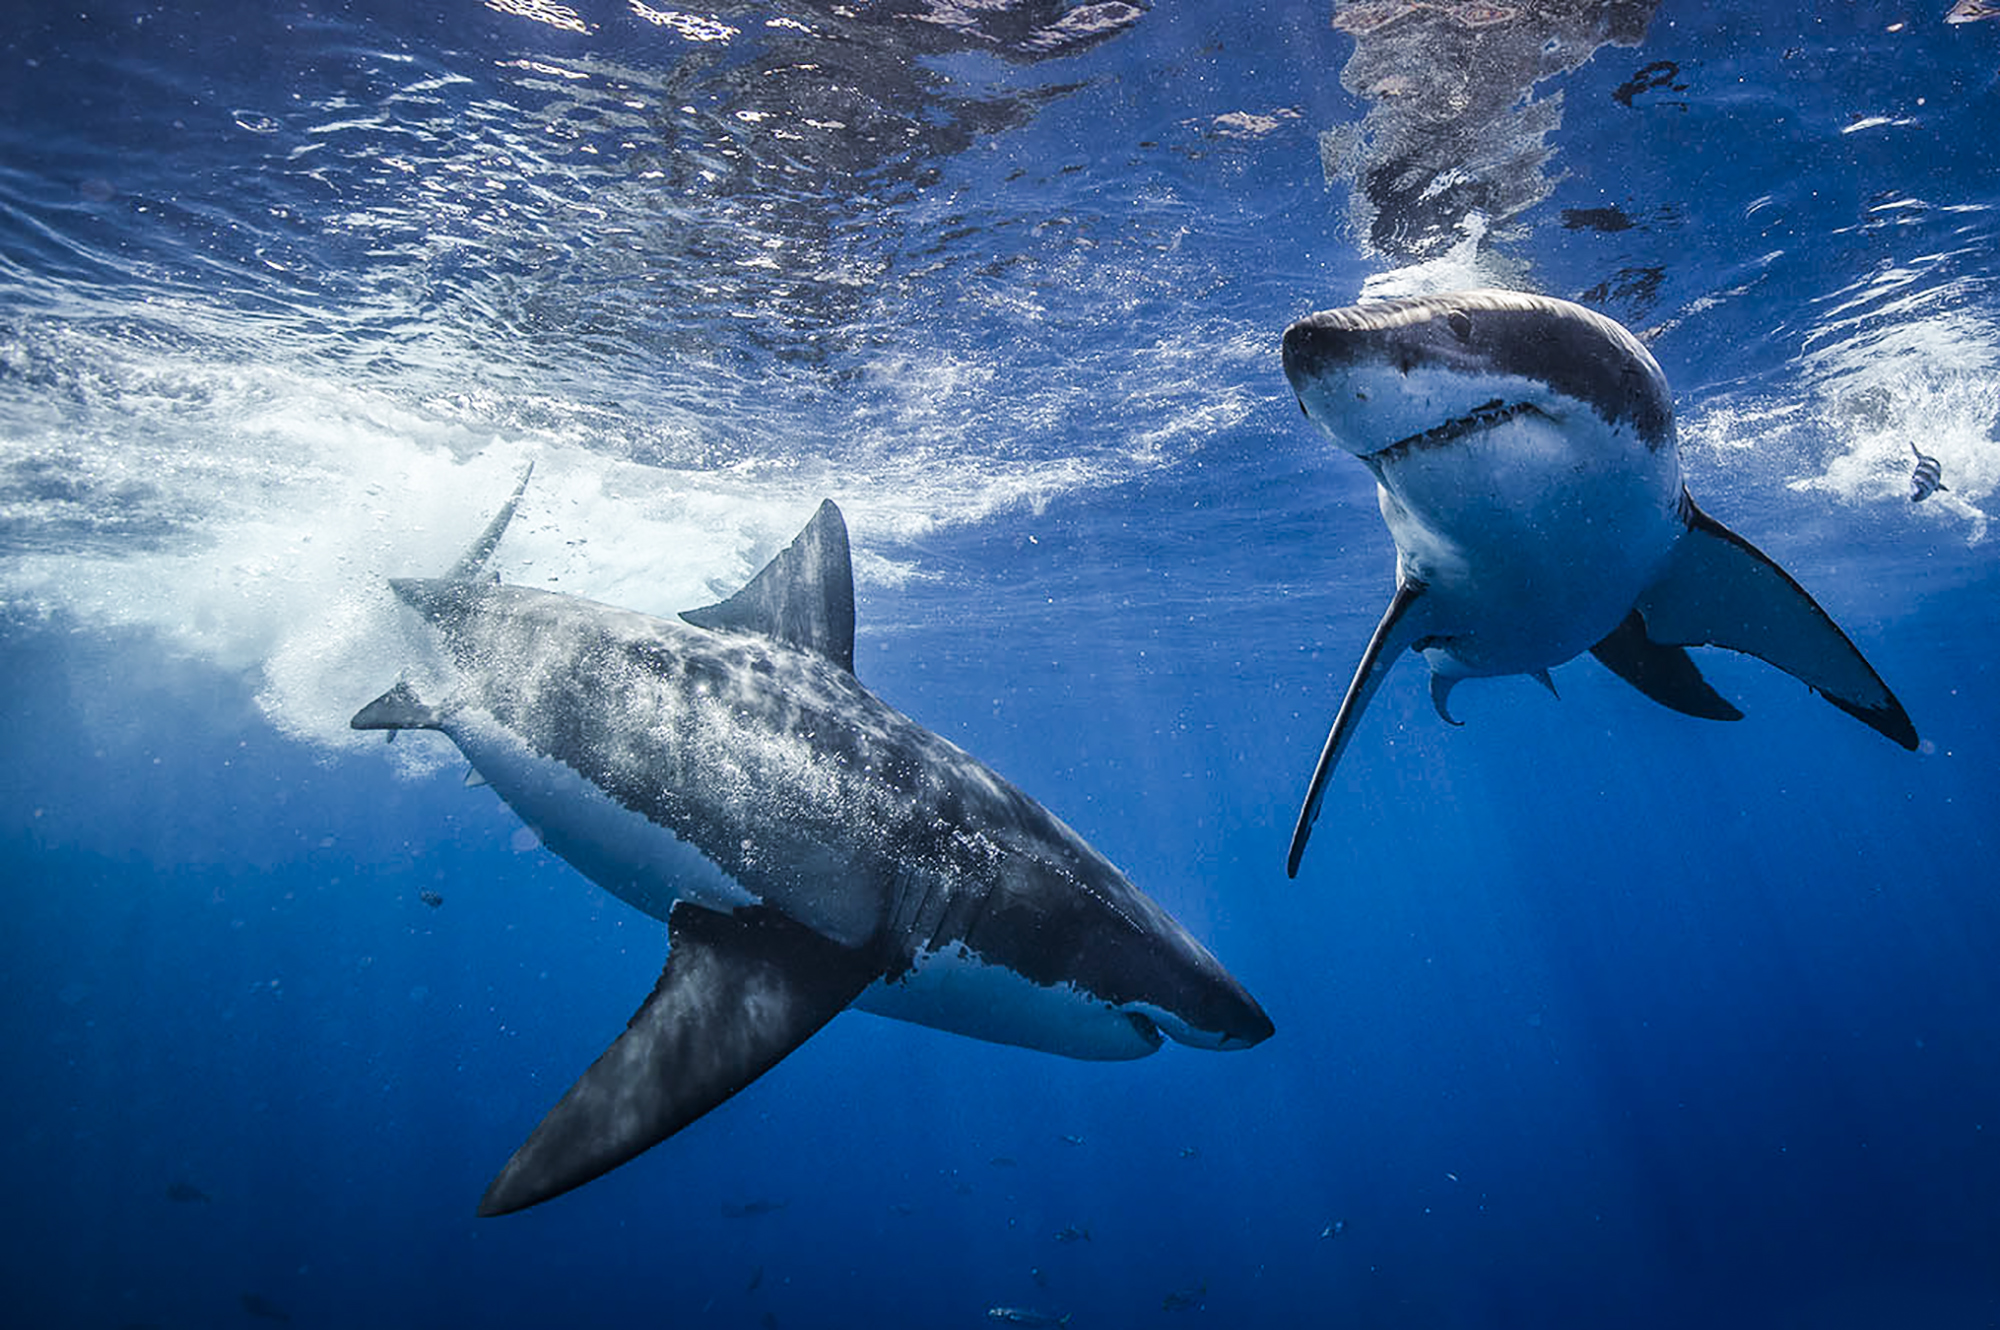 Marine CSI Helps to Identify 16 Great White Sharks in One Trip!